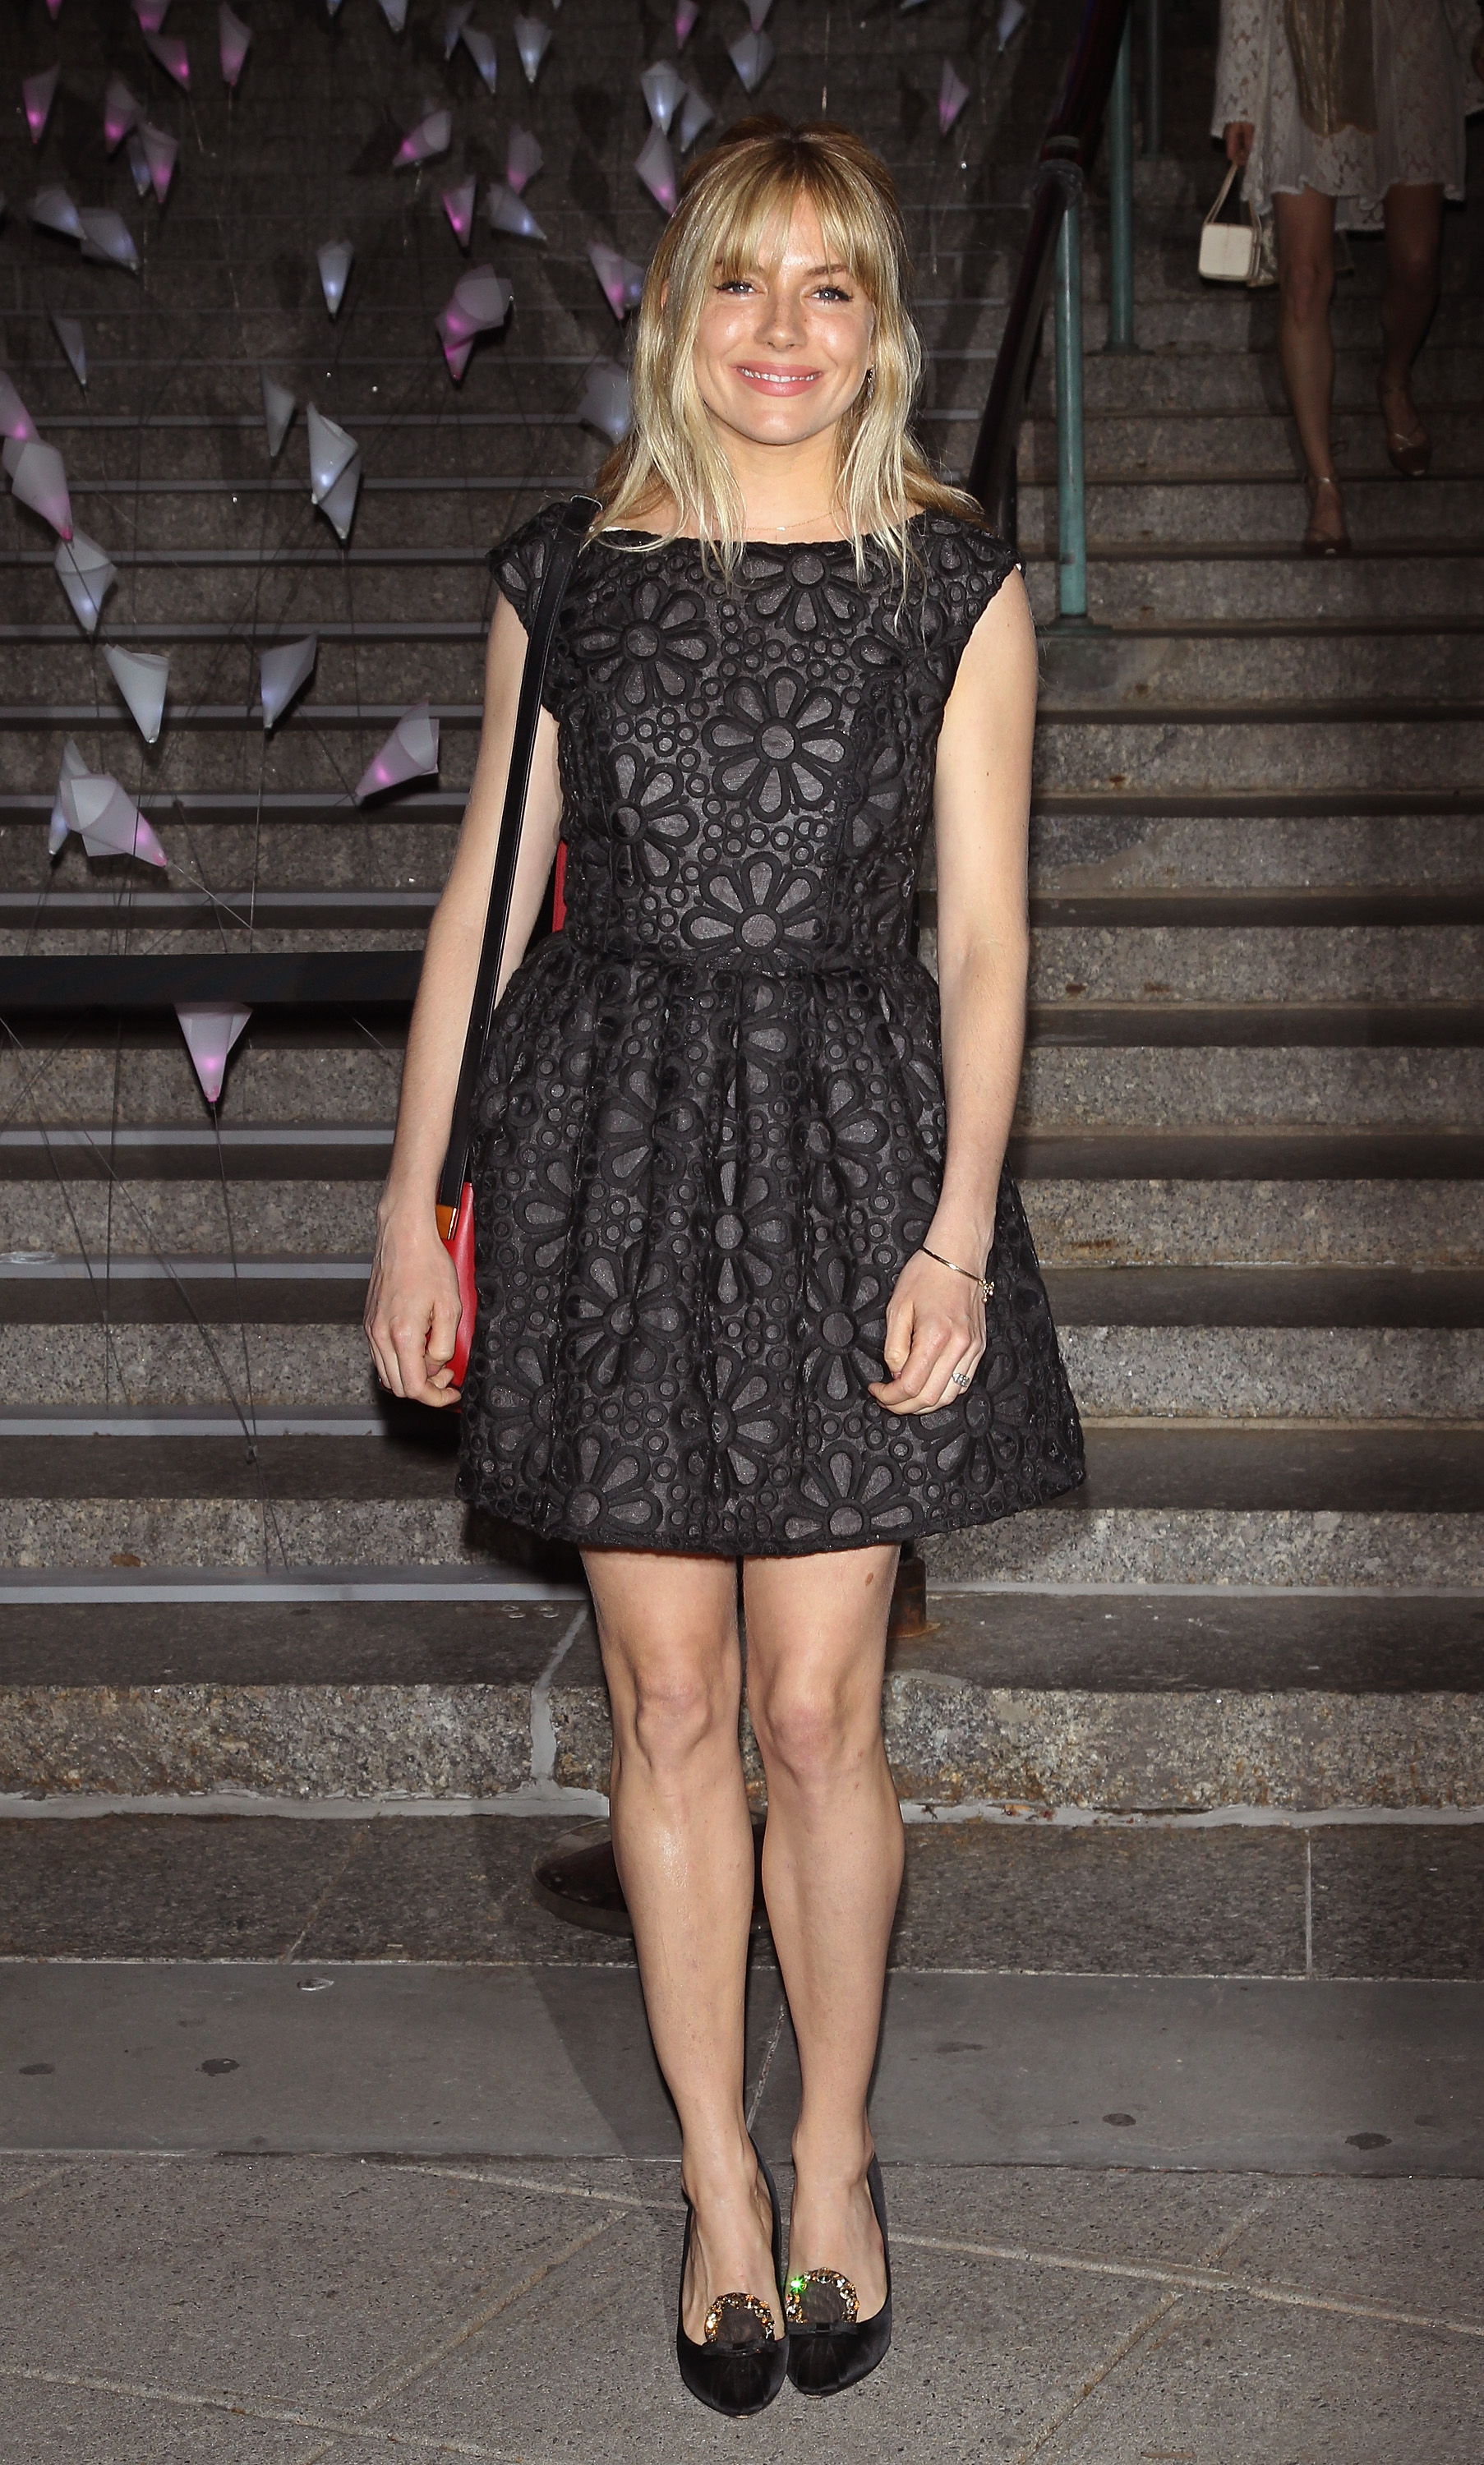 Sienna Miller wore a black dress to Vanity Fair's Tribeca Film Festival party.